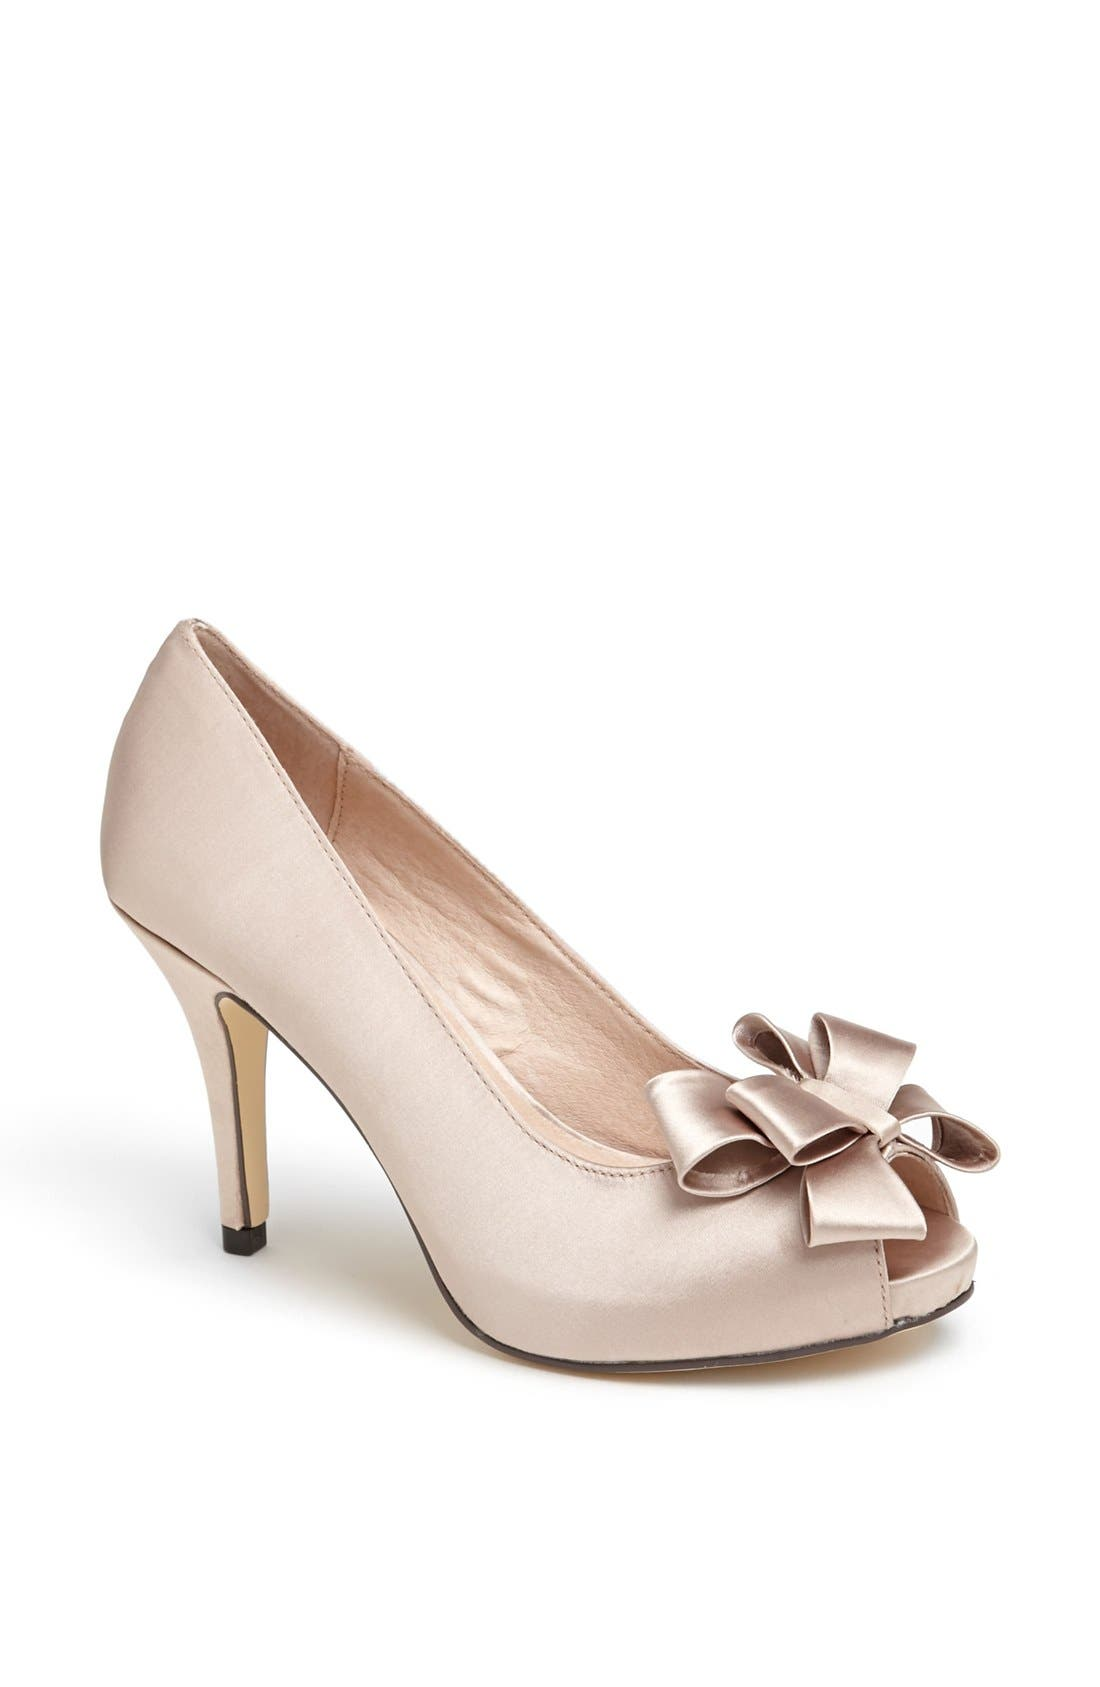 Bow Peep Toe Pump,                             Main thumbnail 1, color,                             021